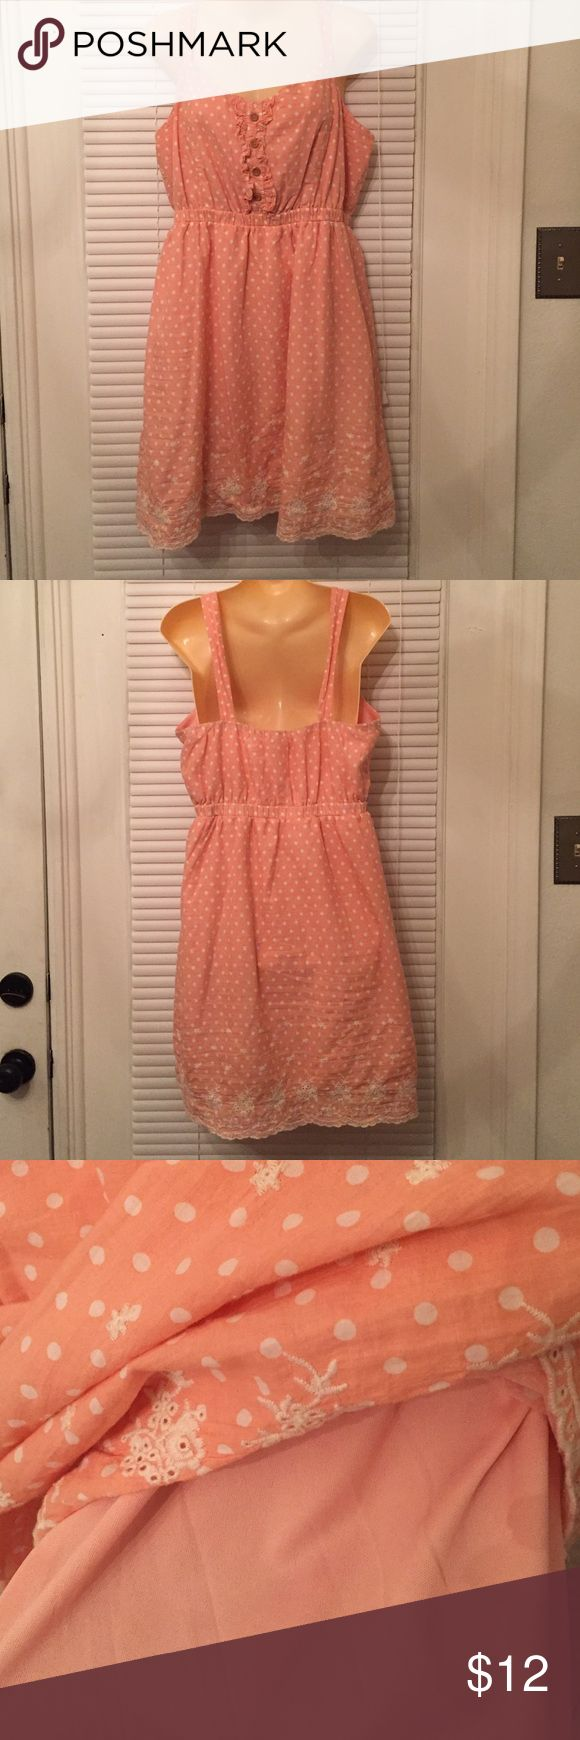 Cute coral sundress that is lined. Cute coral S undress with polka dots and lace at bottom trim. Dress is lined and has thicker straps. Comes from a smoke free and pet free home. Dresses Midi